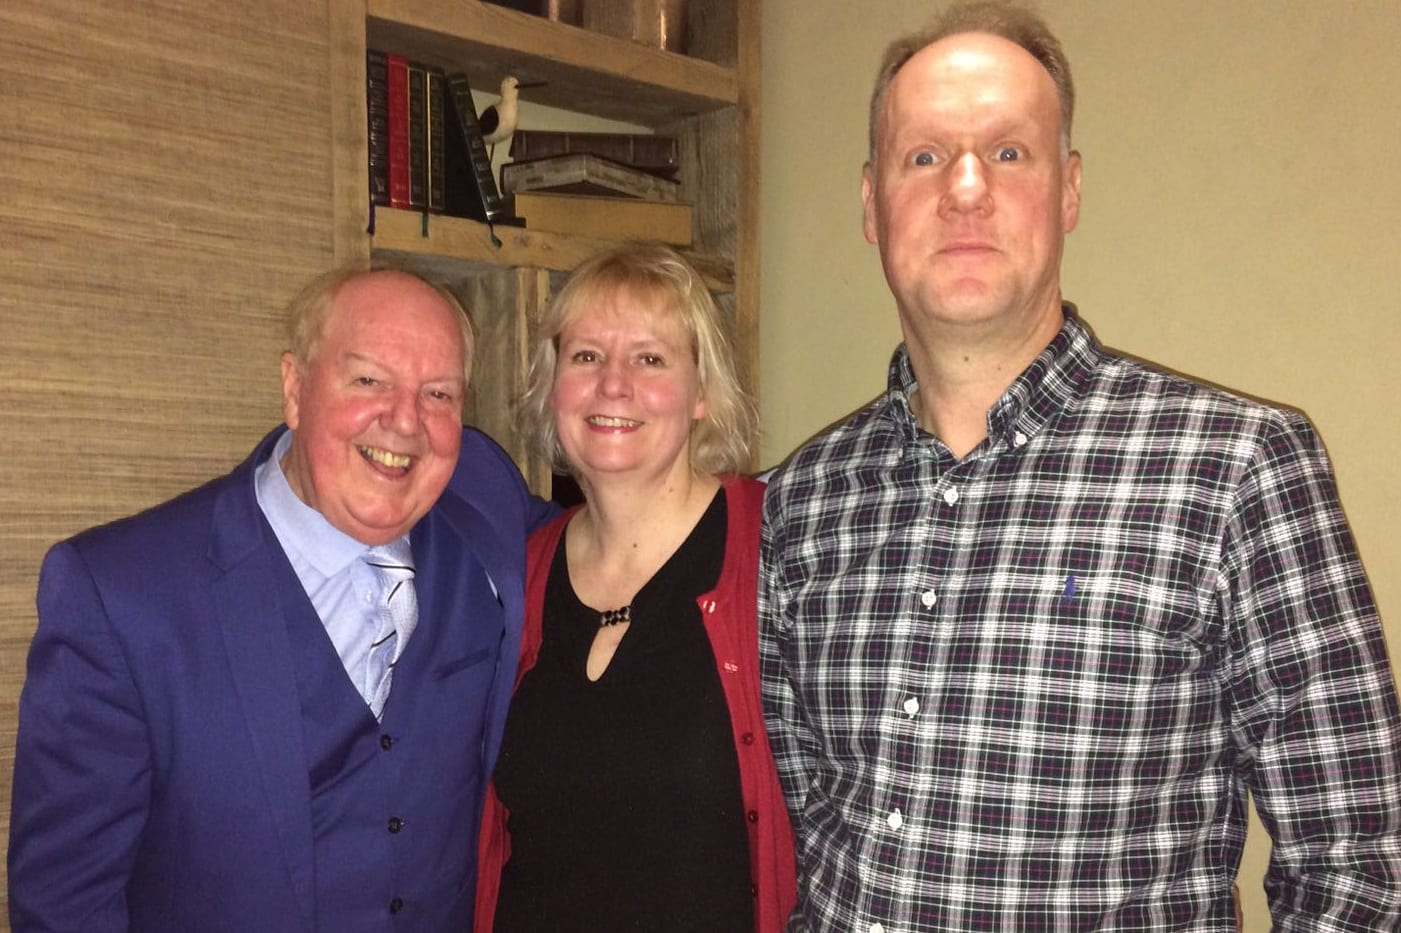 Jimmy Cricket with principal Equity event organisers, Louise Grainger and Michael Day